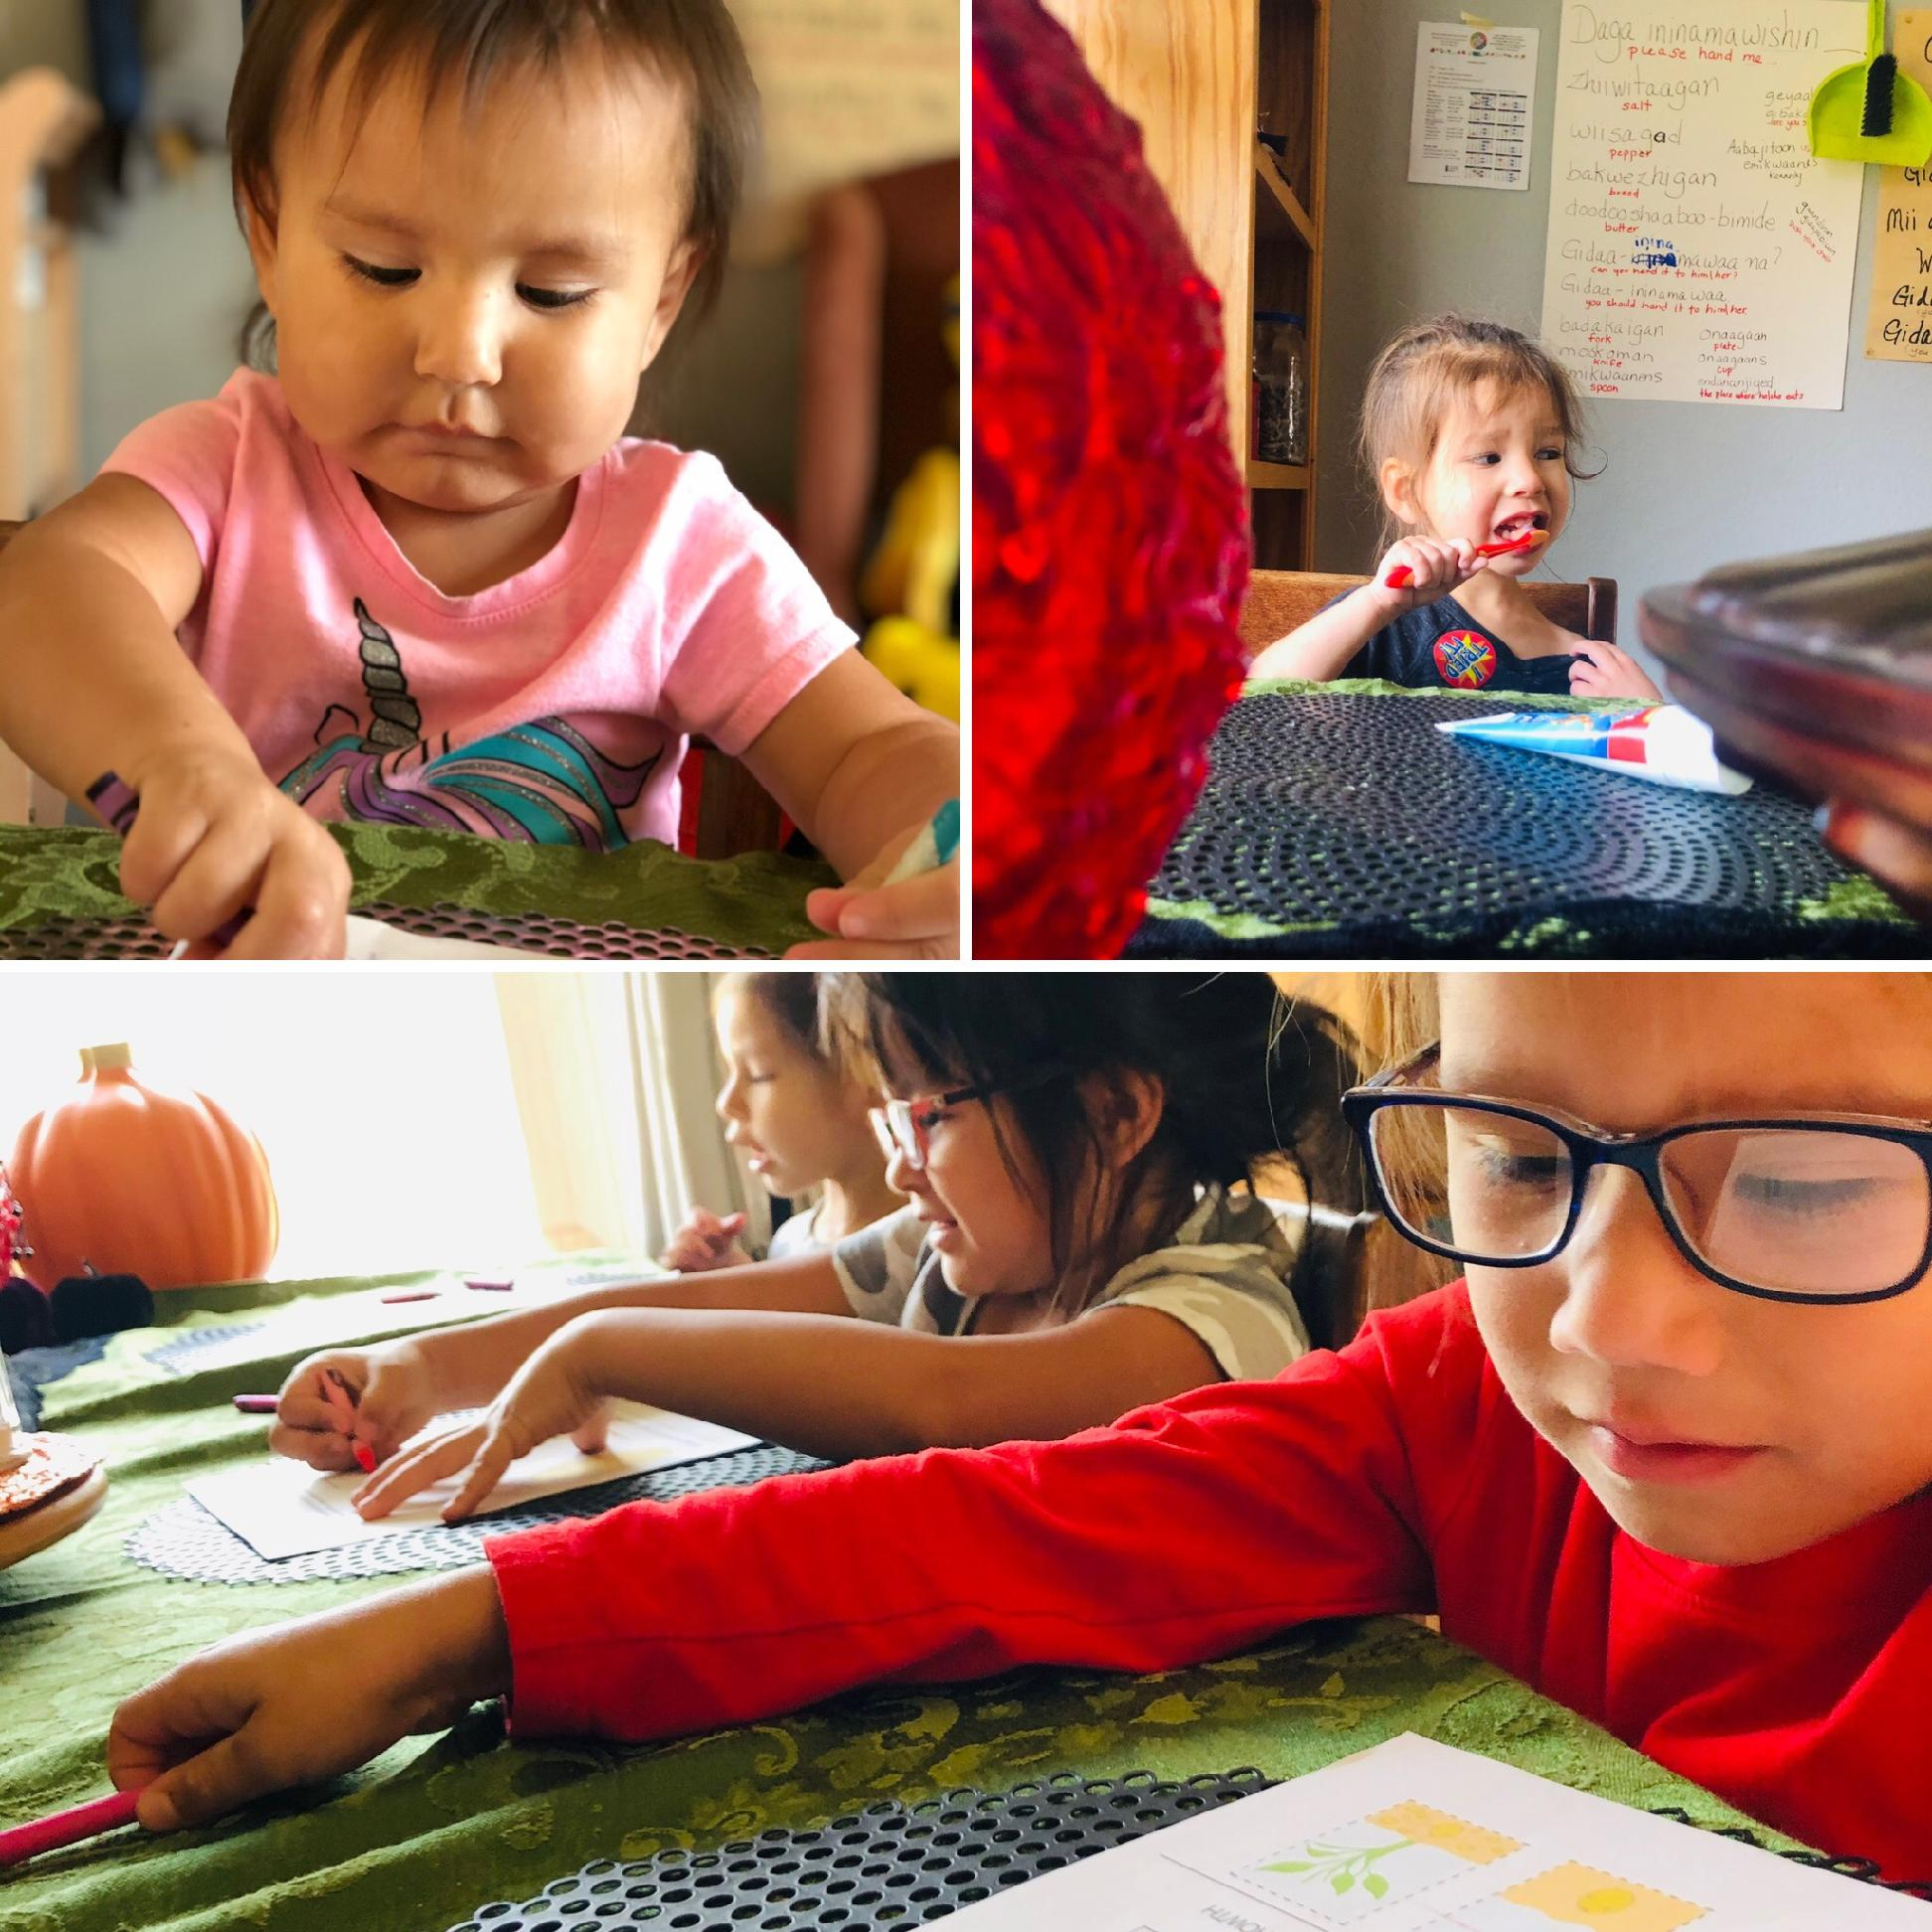 Images of children in the classroom